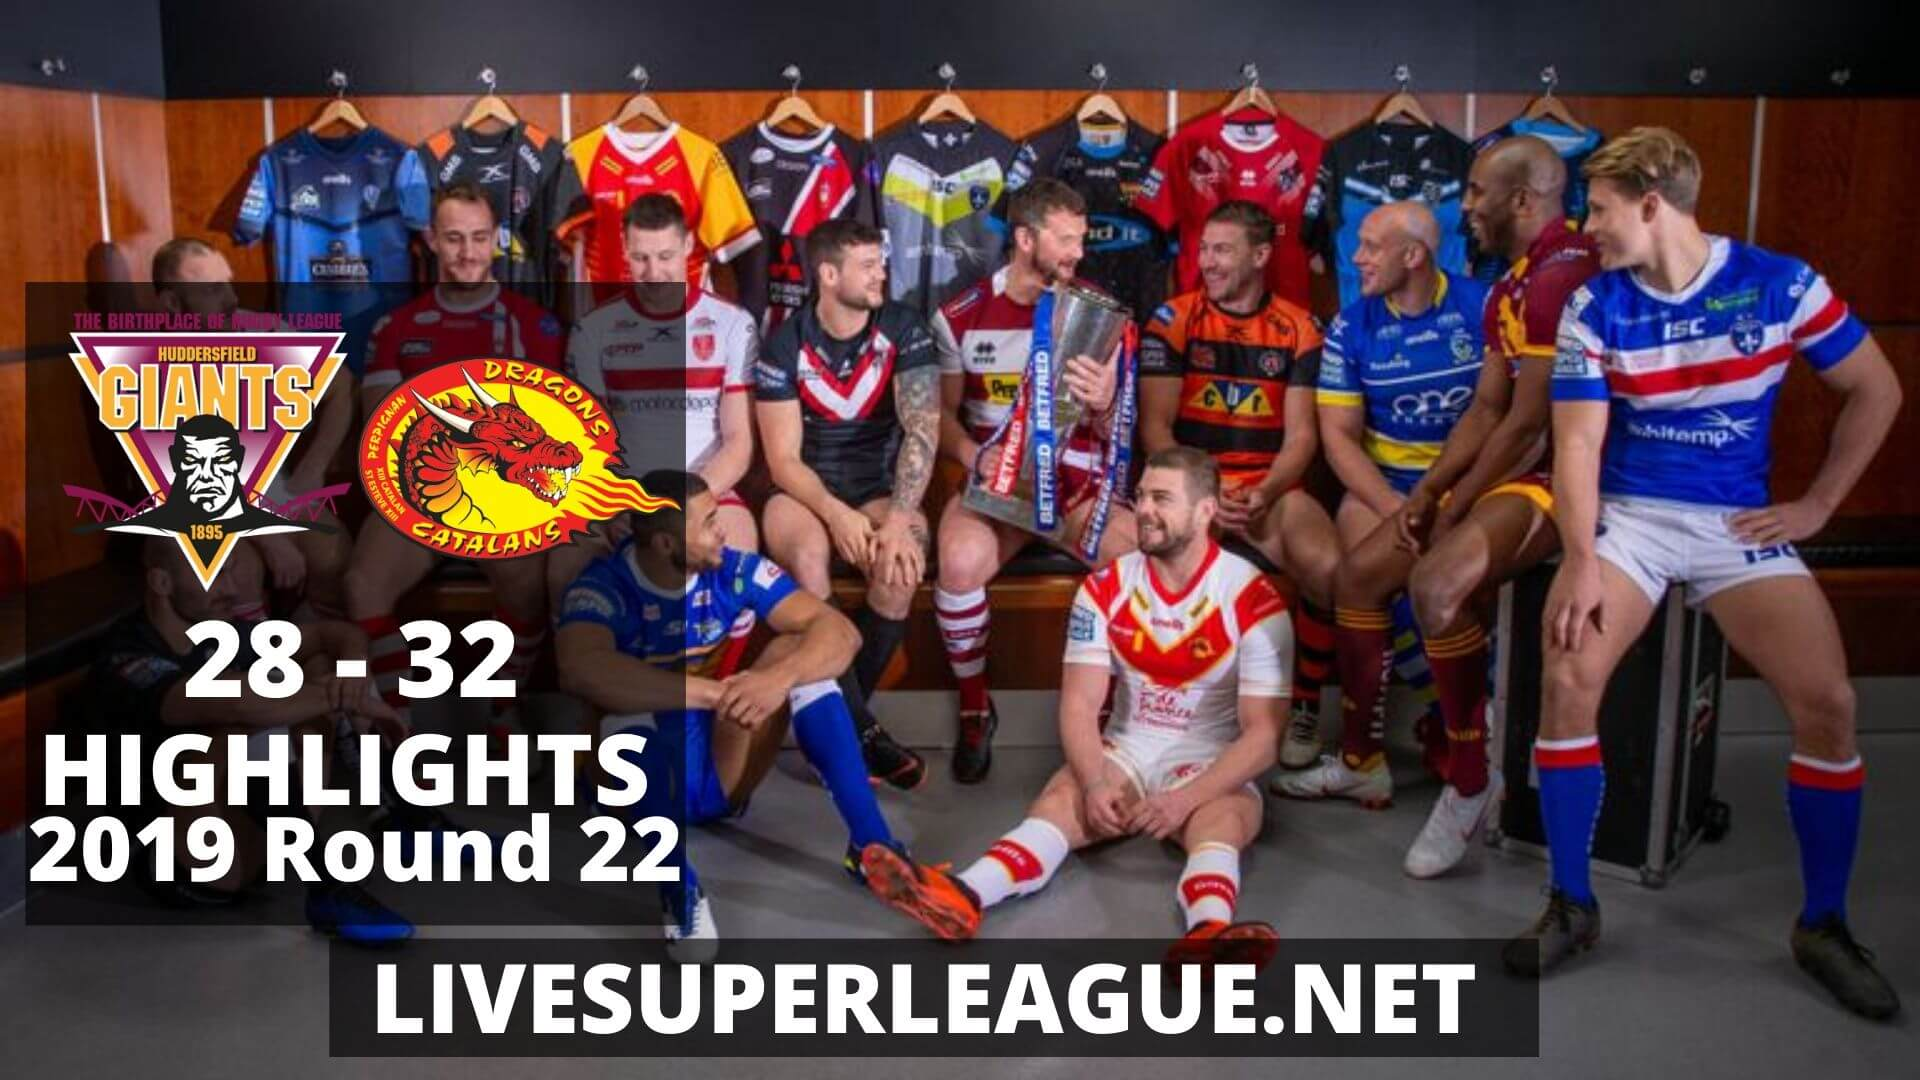 Huddersfield Giants Vs Catalans Dragons Highlights 2019 Round 22